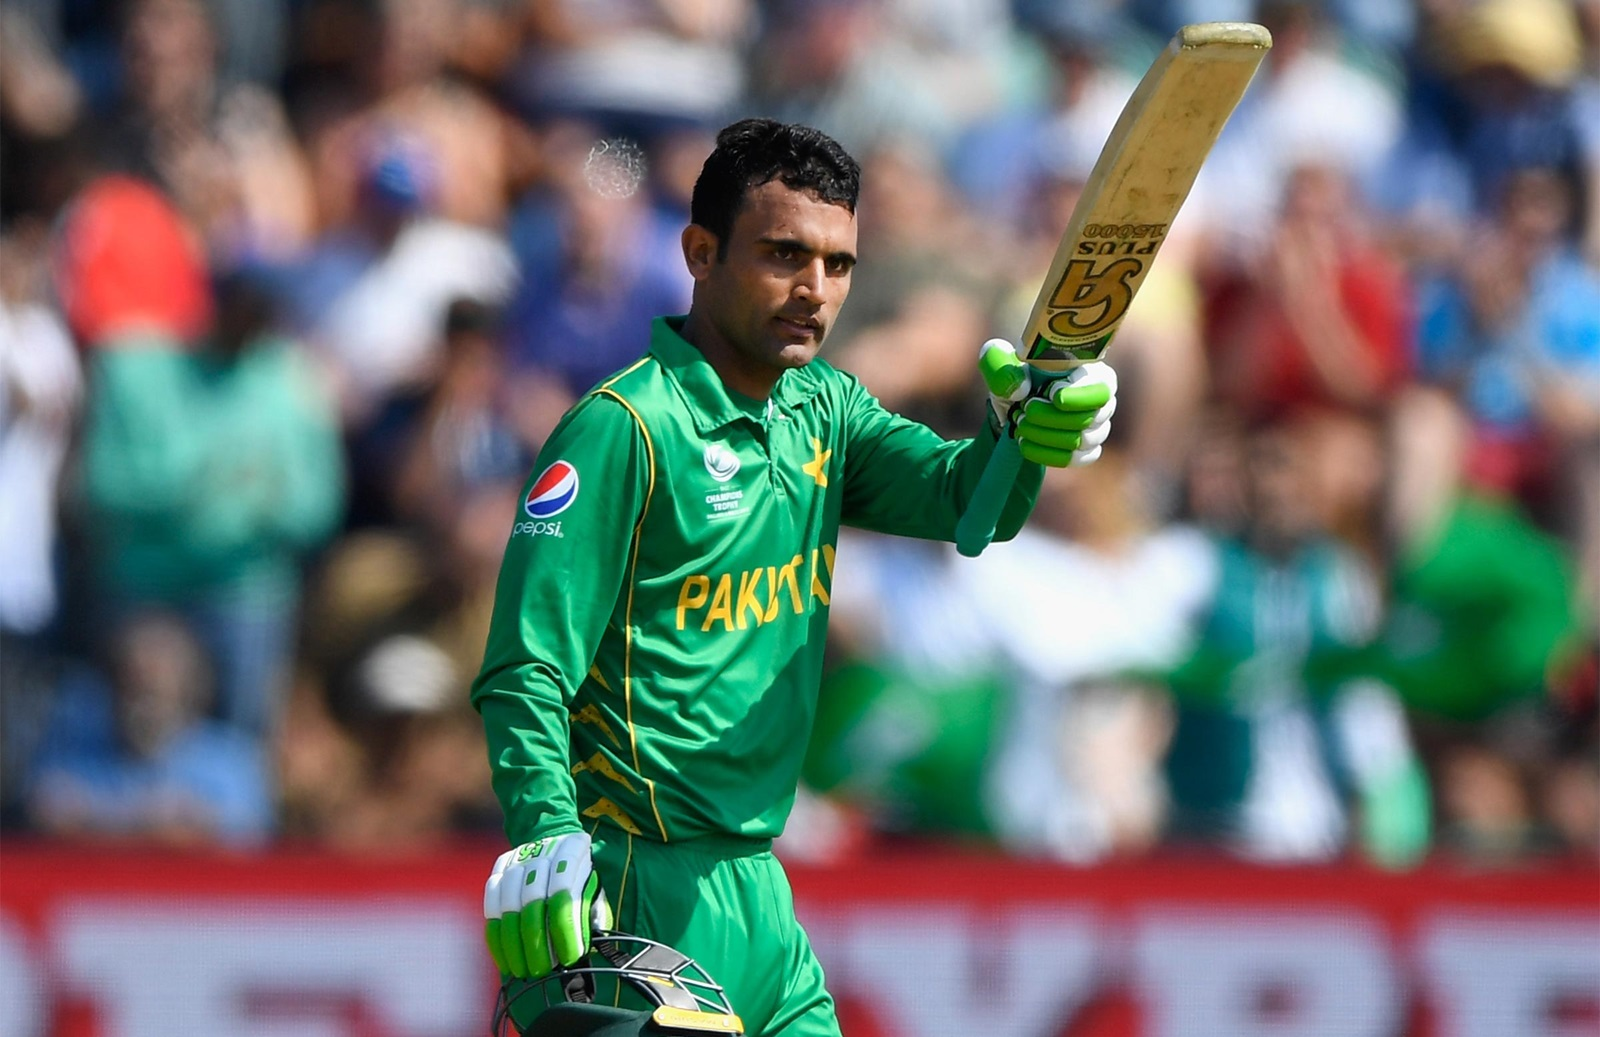 Fakhar Zaman: Pakistan's World Cup weapon